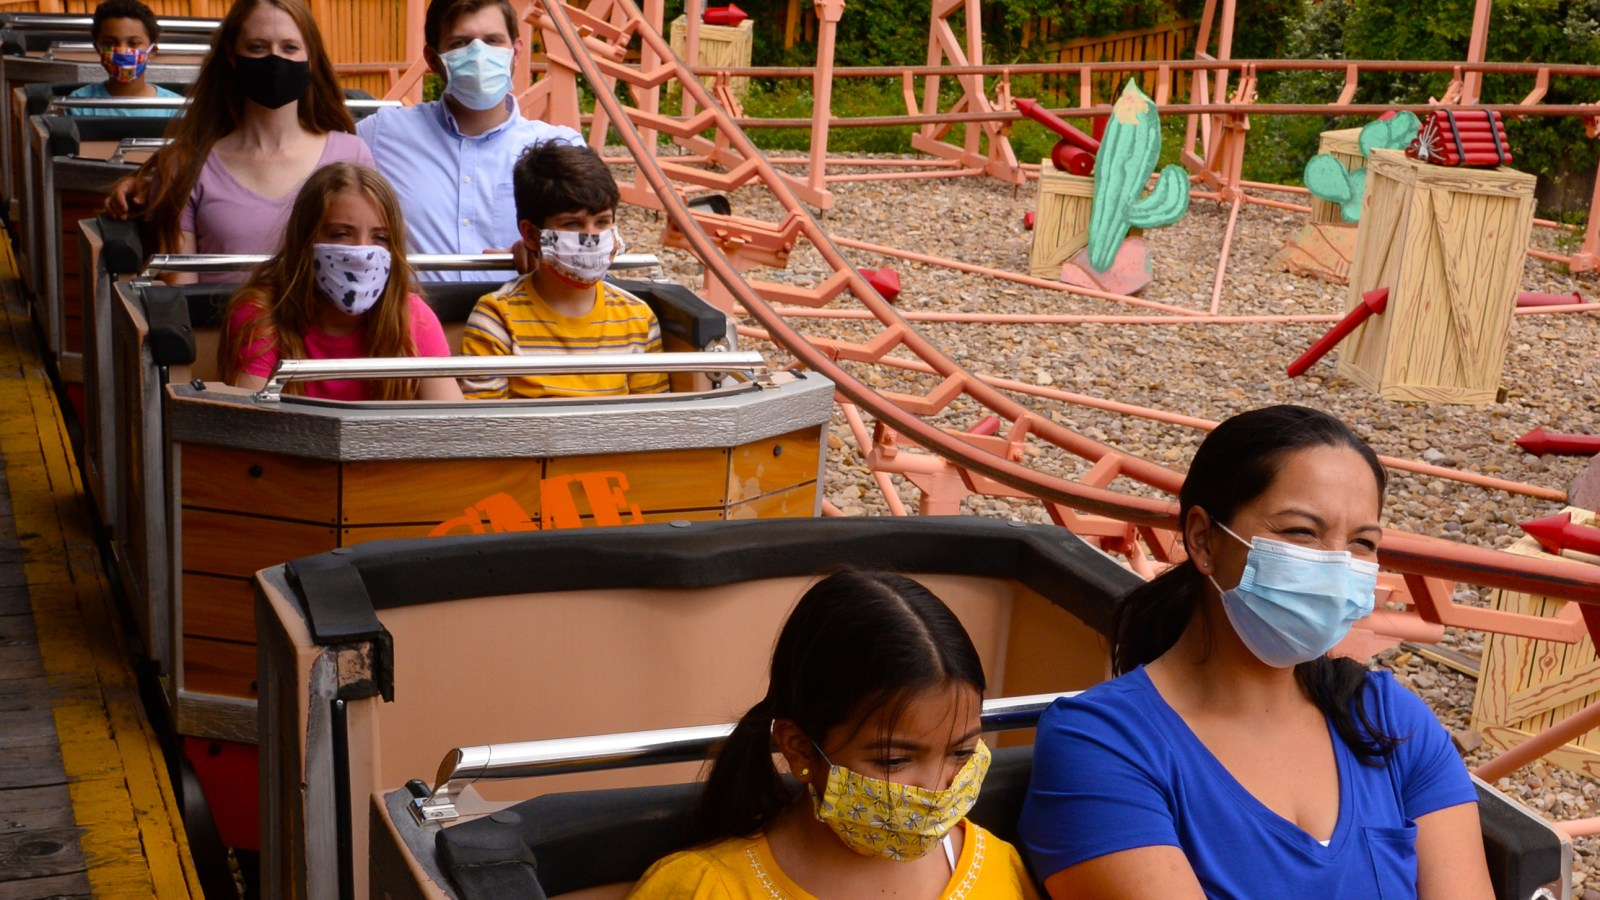 Six Flags Great Adventure Reopening July 4th Weekend With New Safety Measures Due To Covid 19 Pandemic 6abc Philadelphia